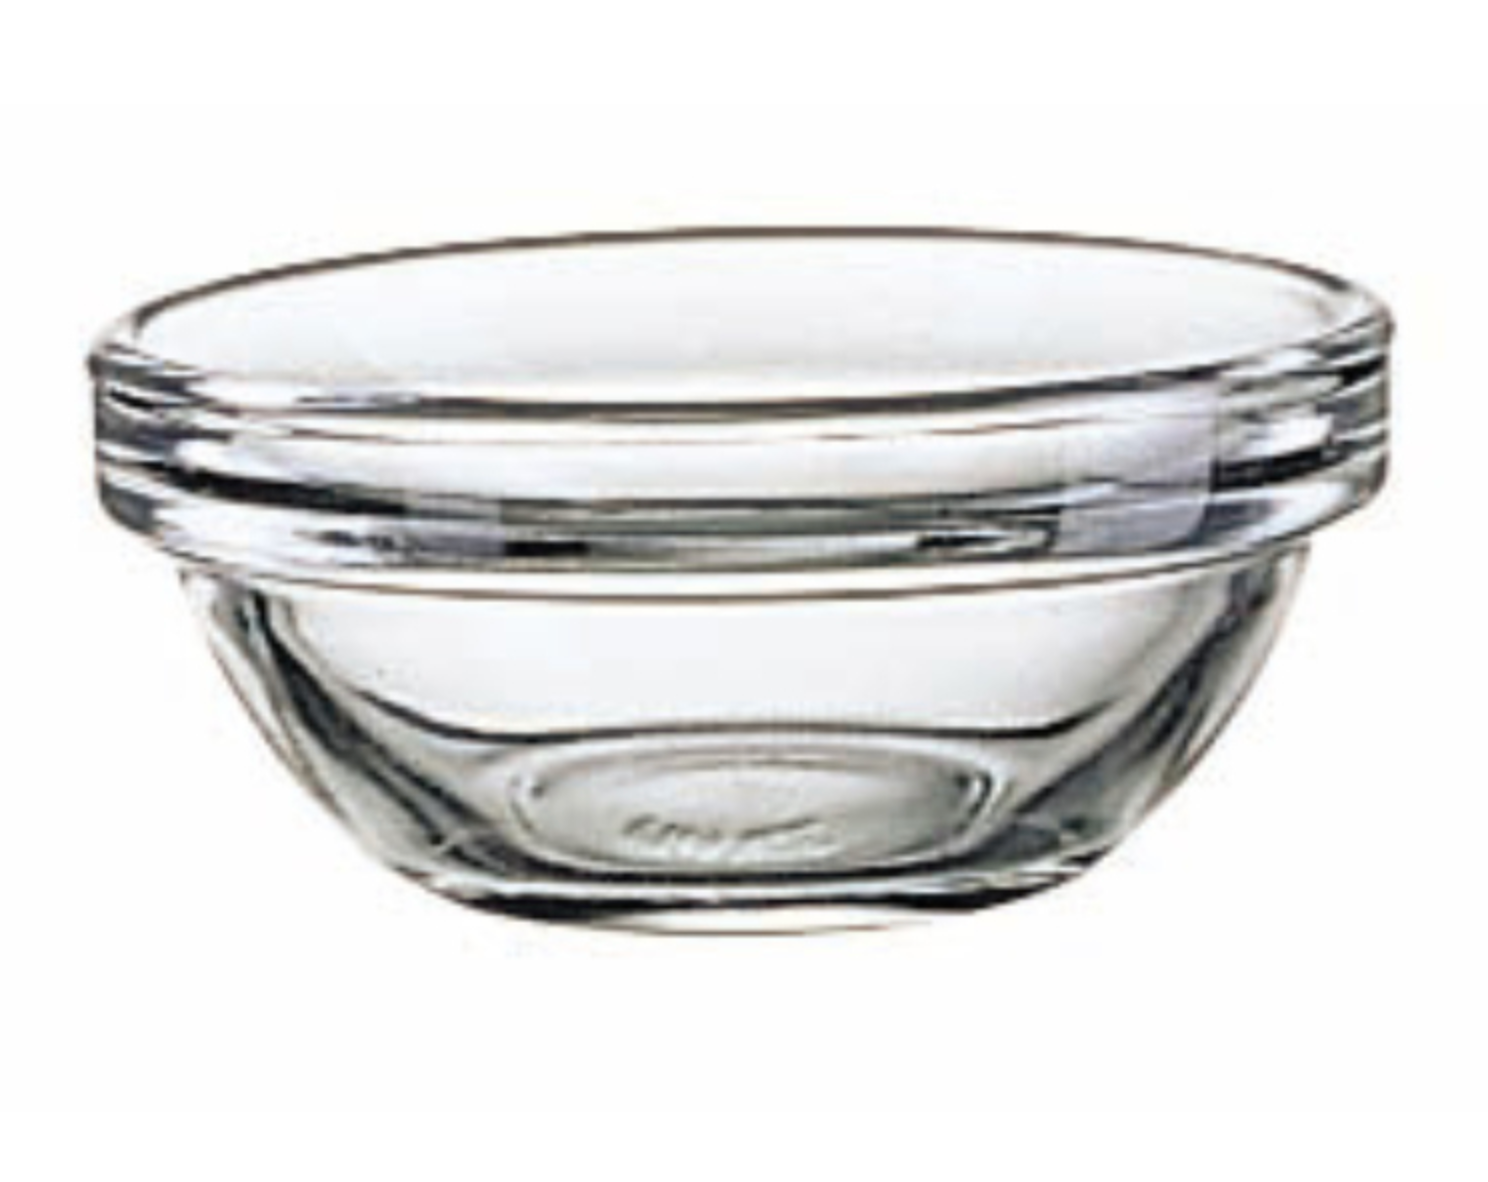 Stackable Glass Bowls 3 Inch Diameter, Set of 6